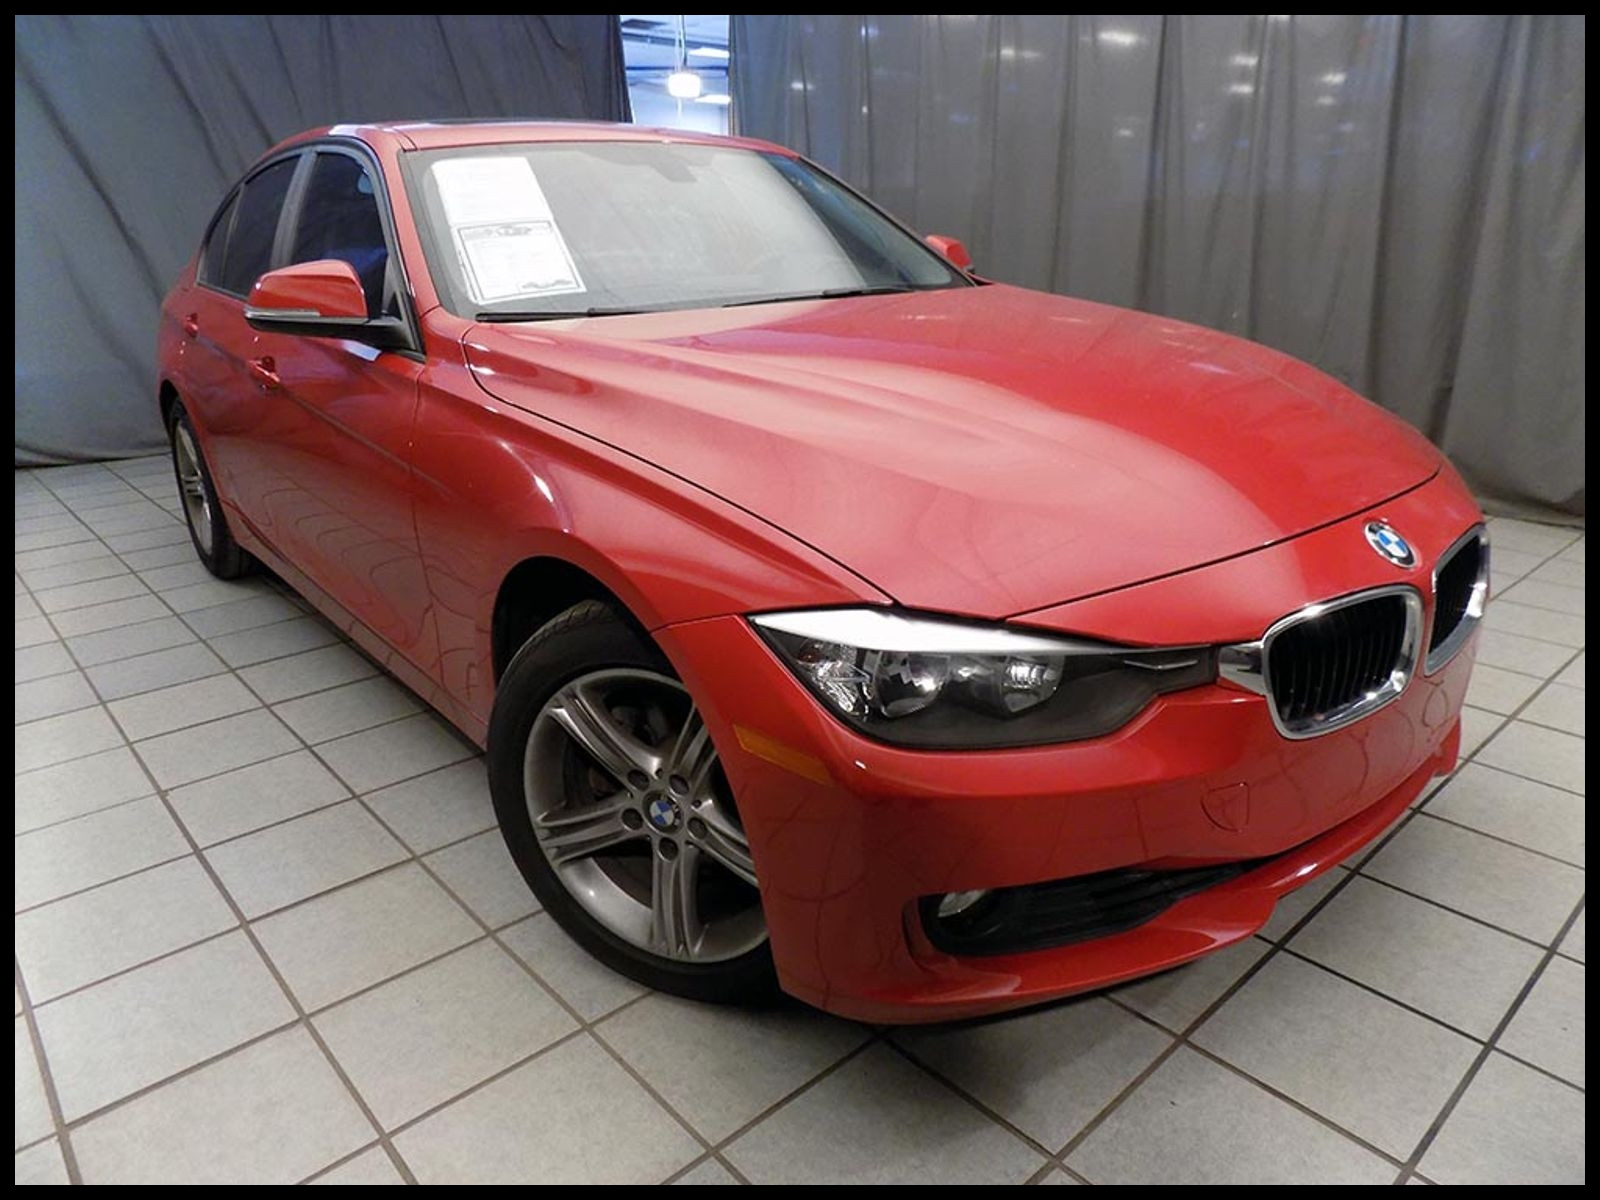 Bmw Dealership Cleveland Ohio Awesome 2014 Bmw 328i Xdrive City Ohio north Coast Auto Mall